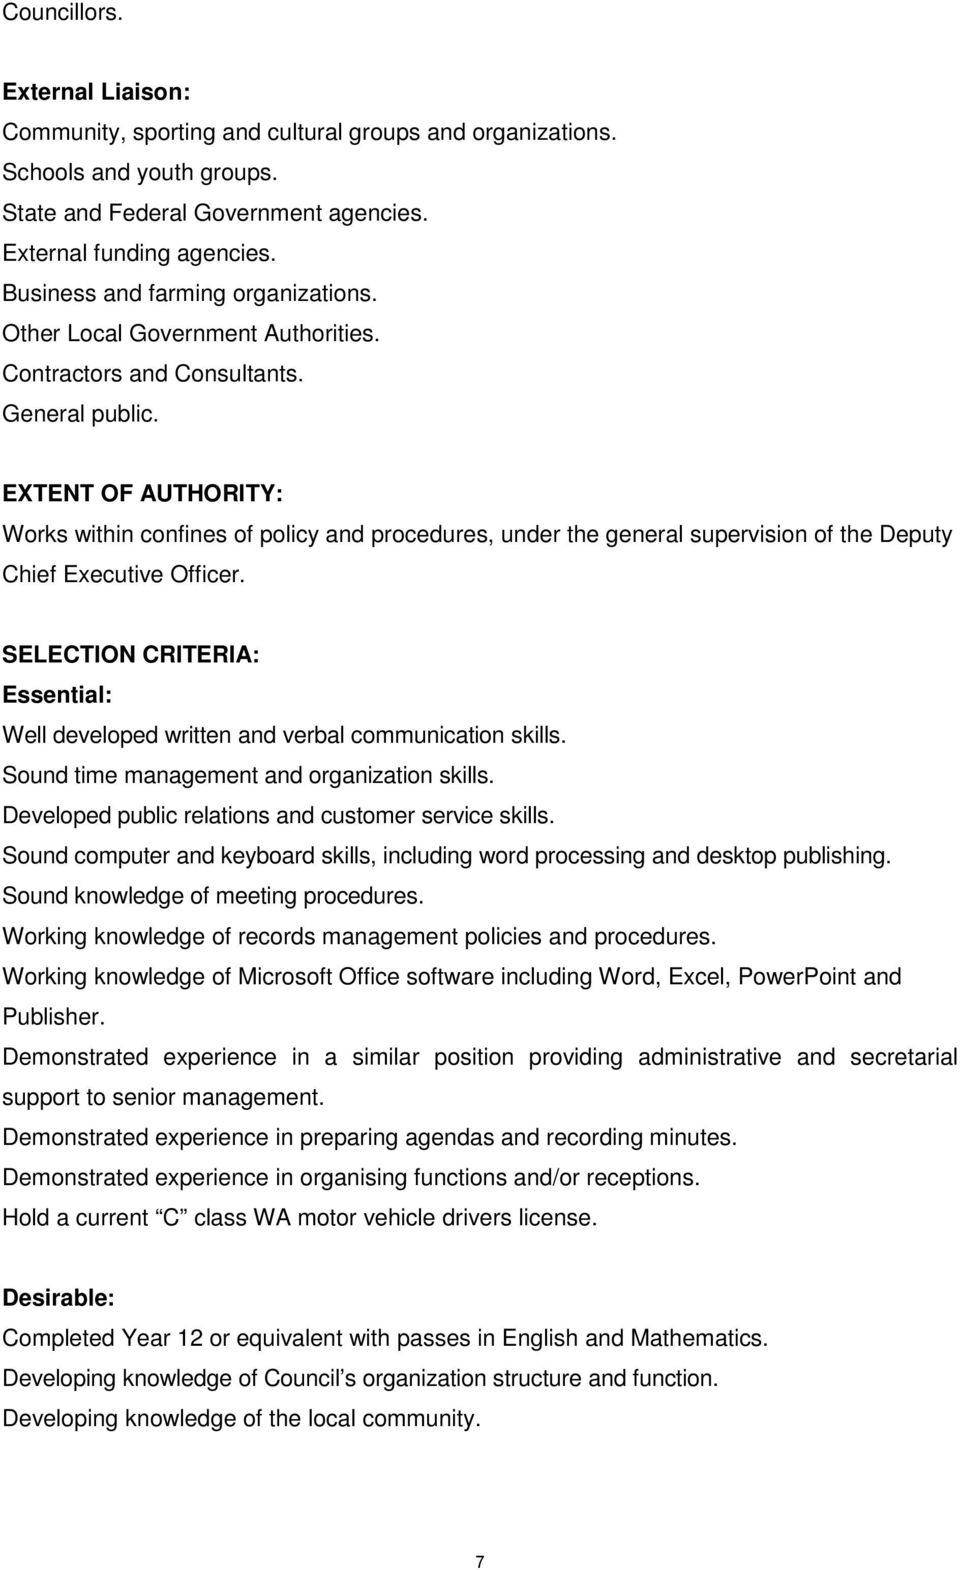 EXTENT OF AUTHORITY: Works within confines of policy and procedures, under the general supervision of the Deputy Chief Executive Officer.